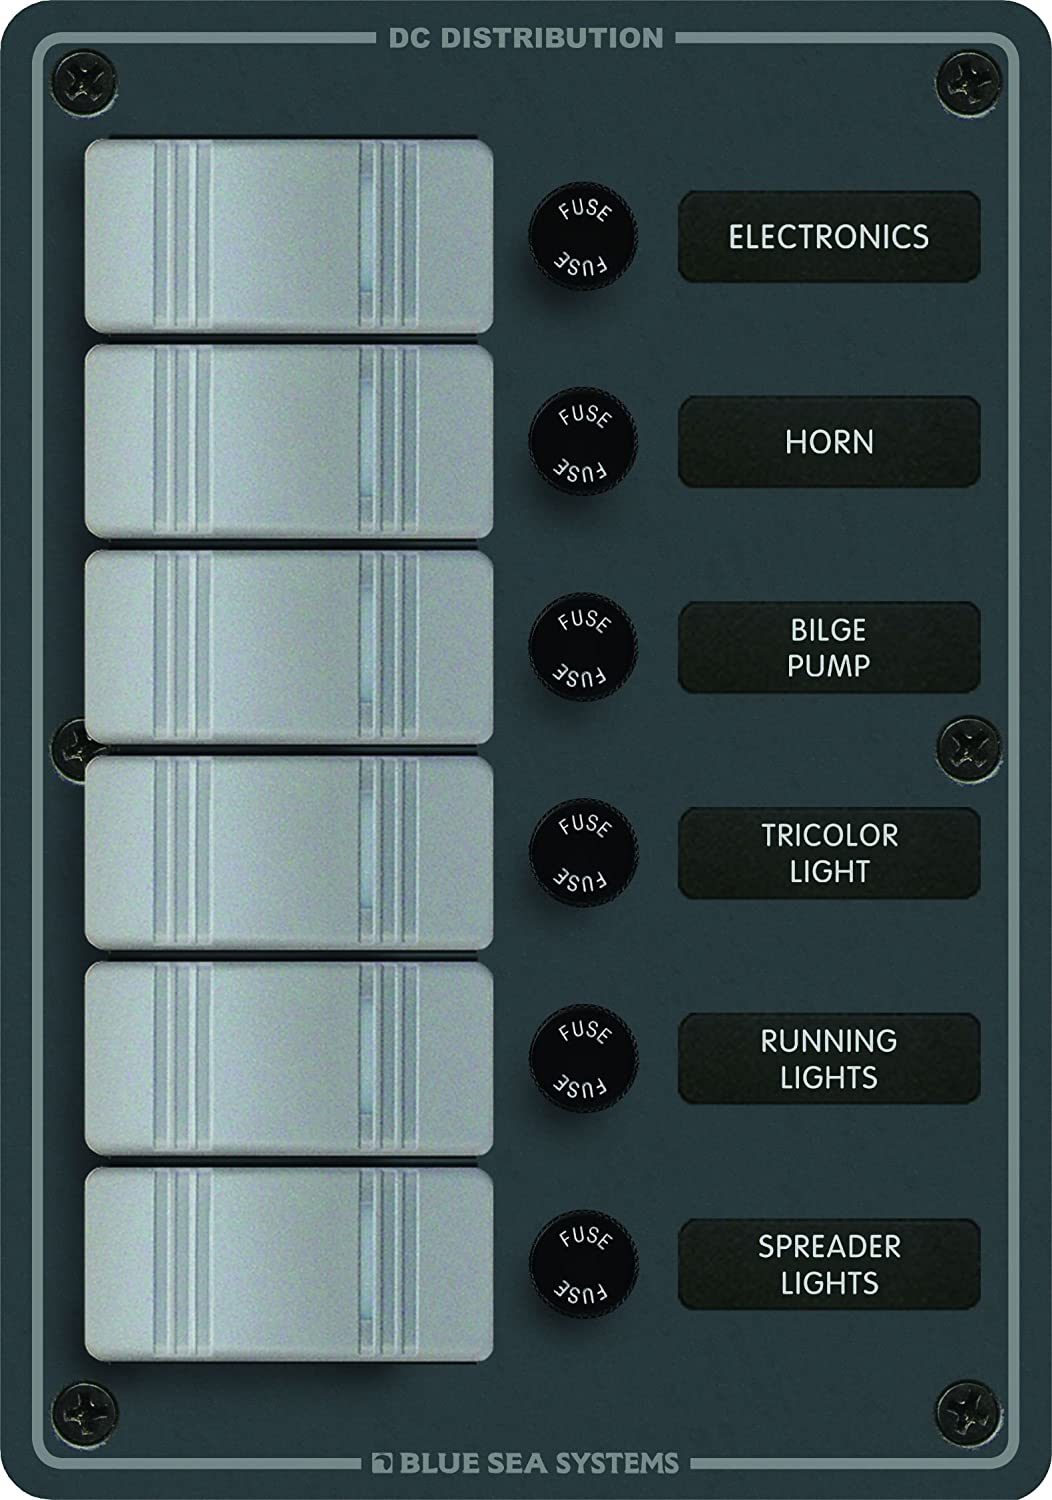 Blue Sea Systems 8053, 6 Position Contura Switch Panel with Fuses, Slate Gray Seawide Marine